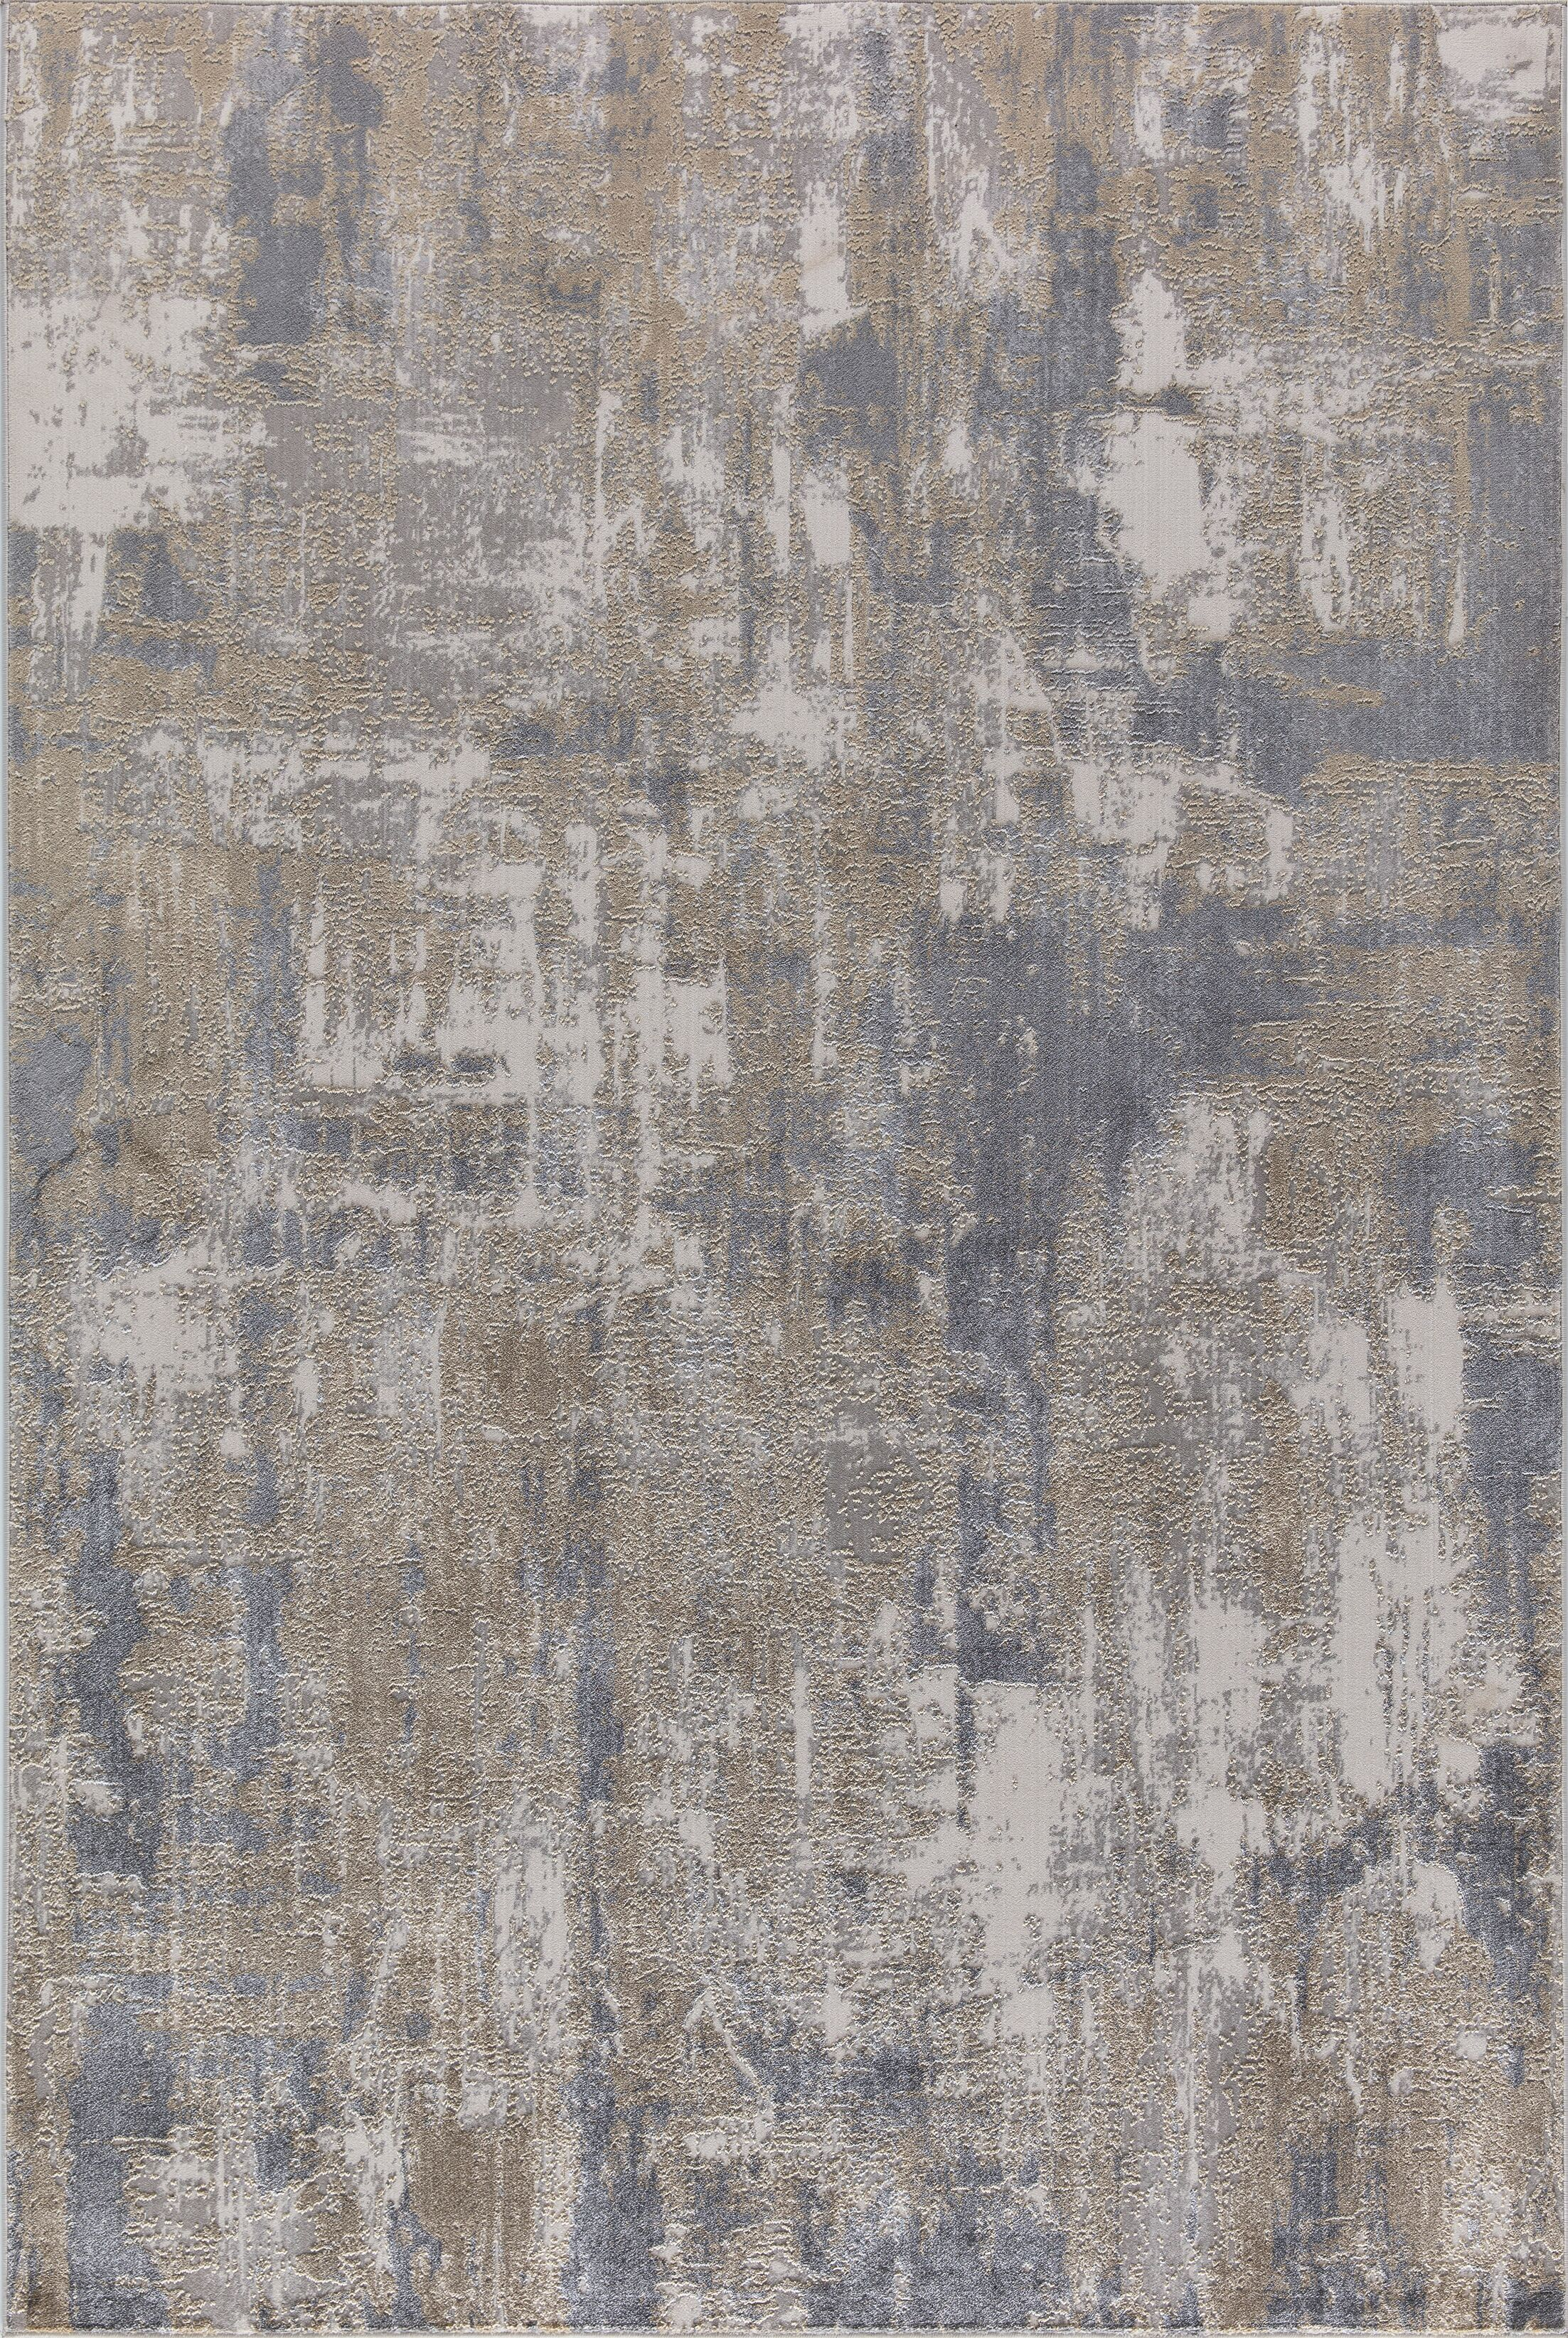 Rearick Gray/Beige Area Rug Rug Size: Rectangle 6'7